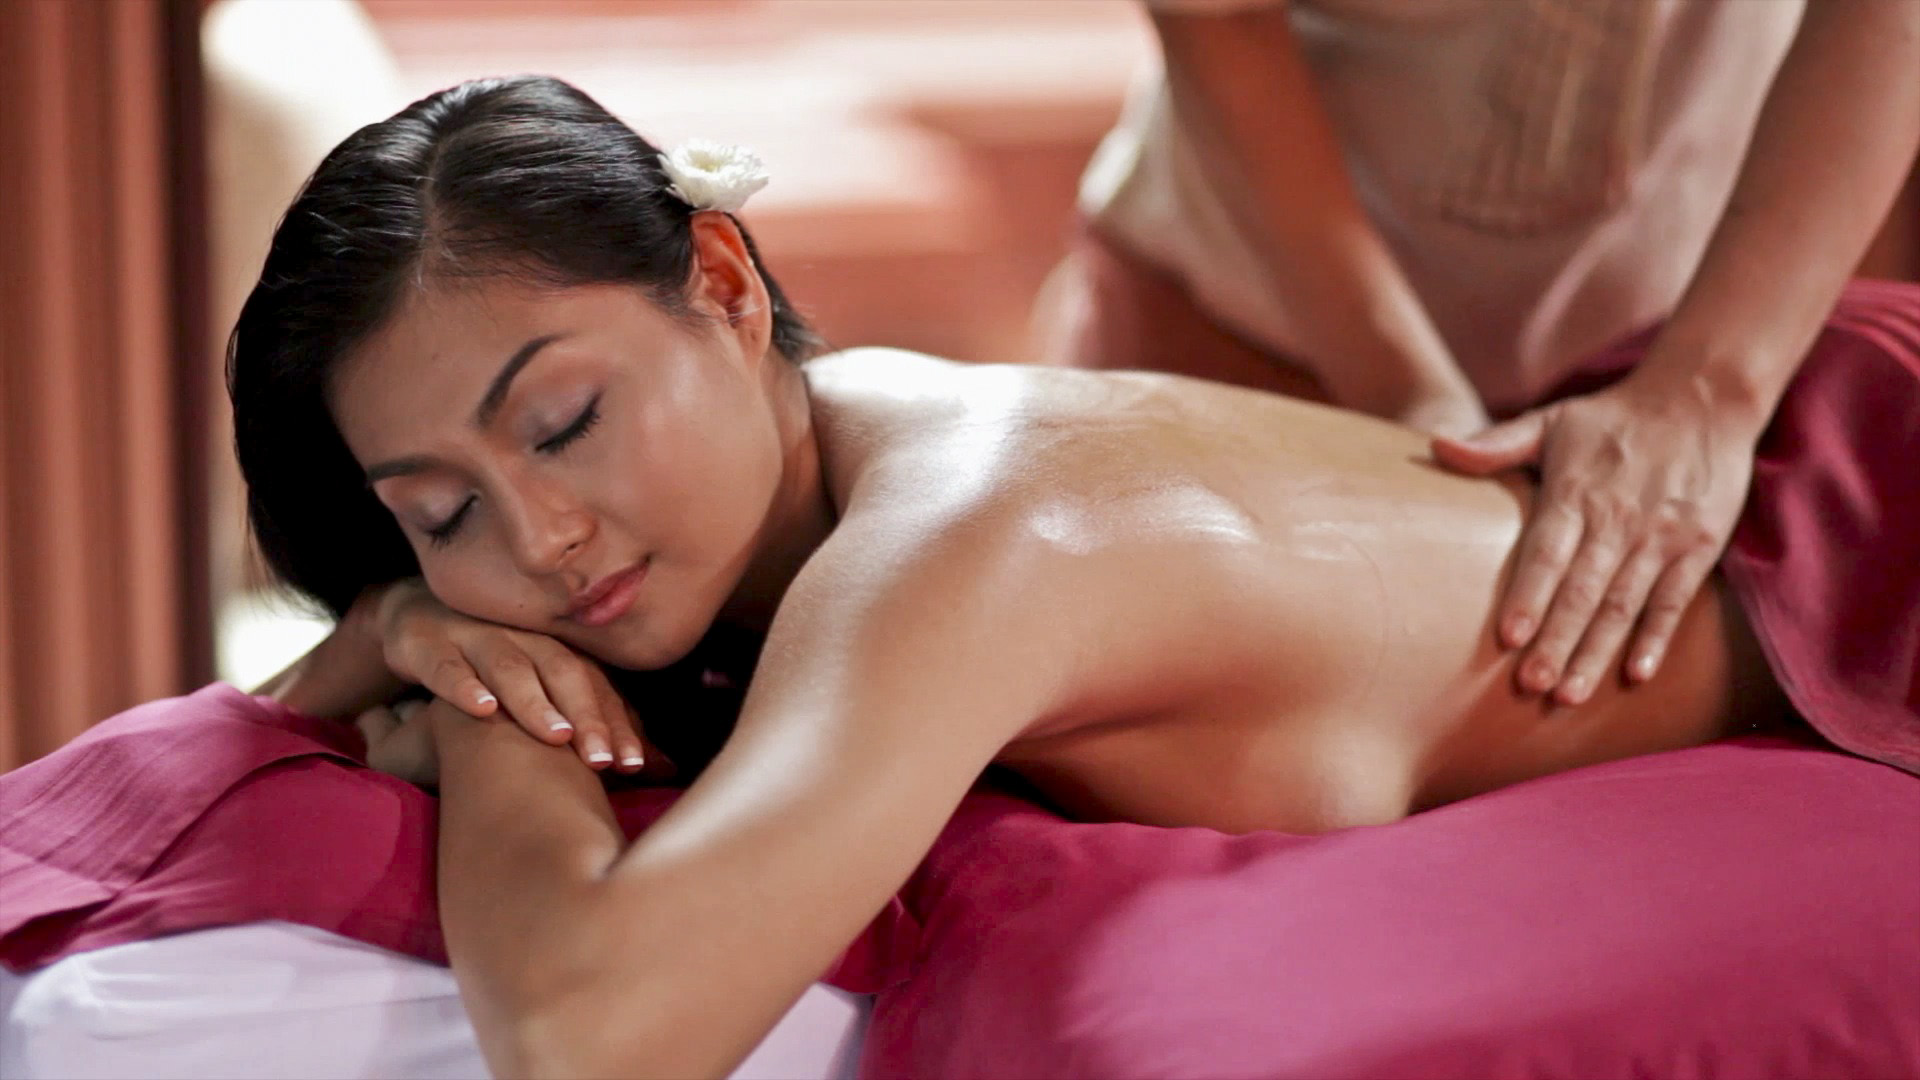 Cum shot thai massage song